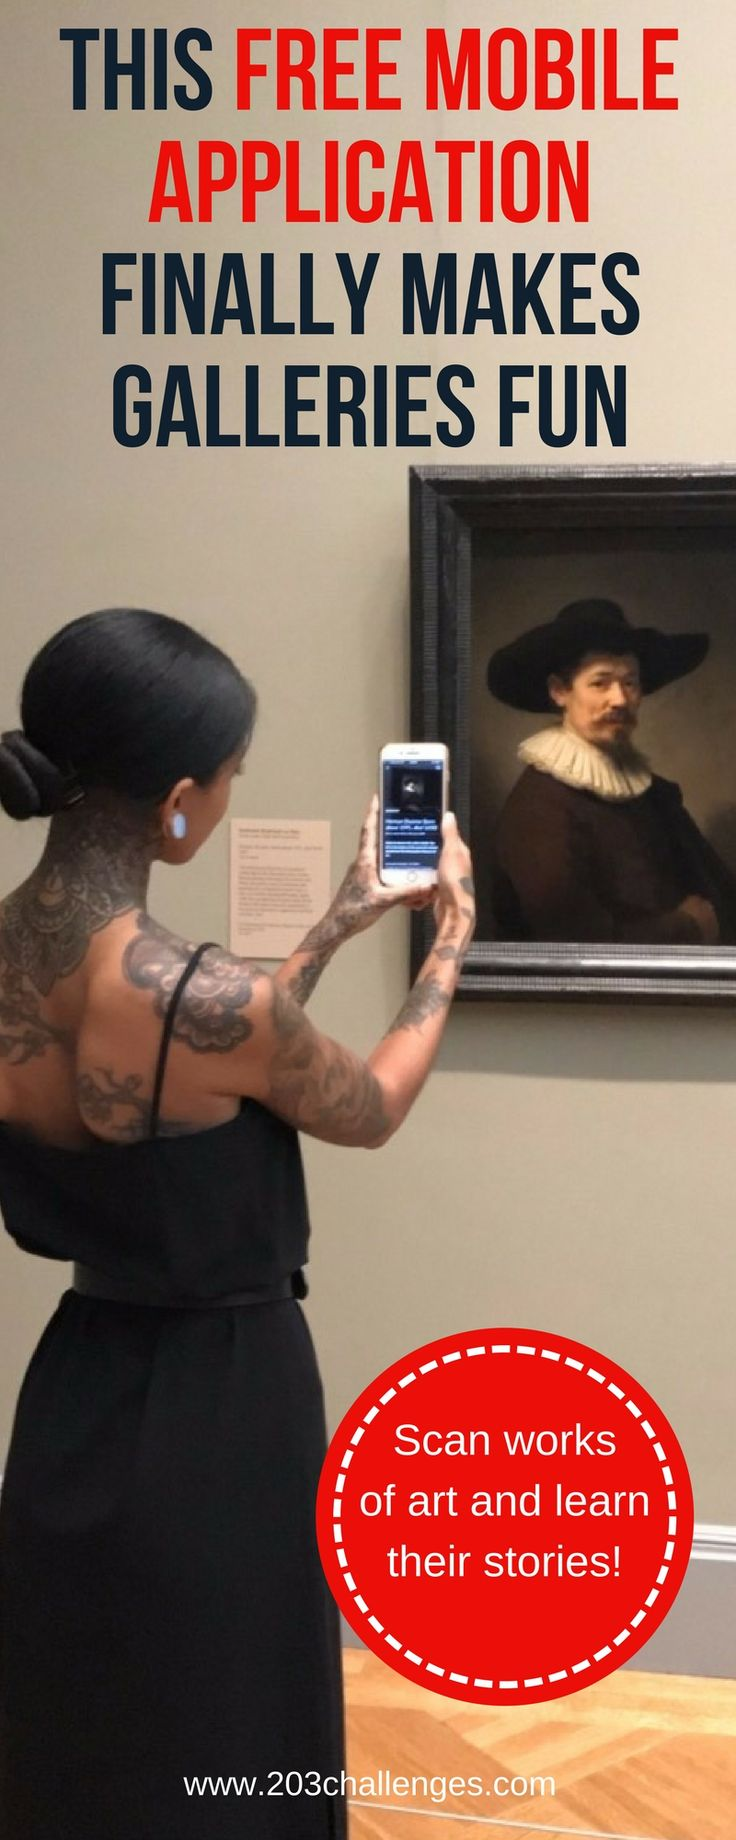 Art app Smartify - learn the stories of the most famous works of art in the world while standing in front of them, in the museum or gallery.